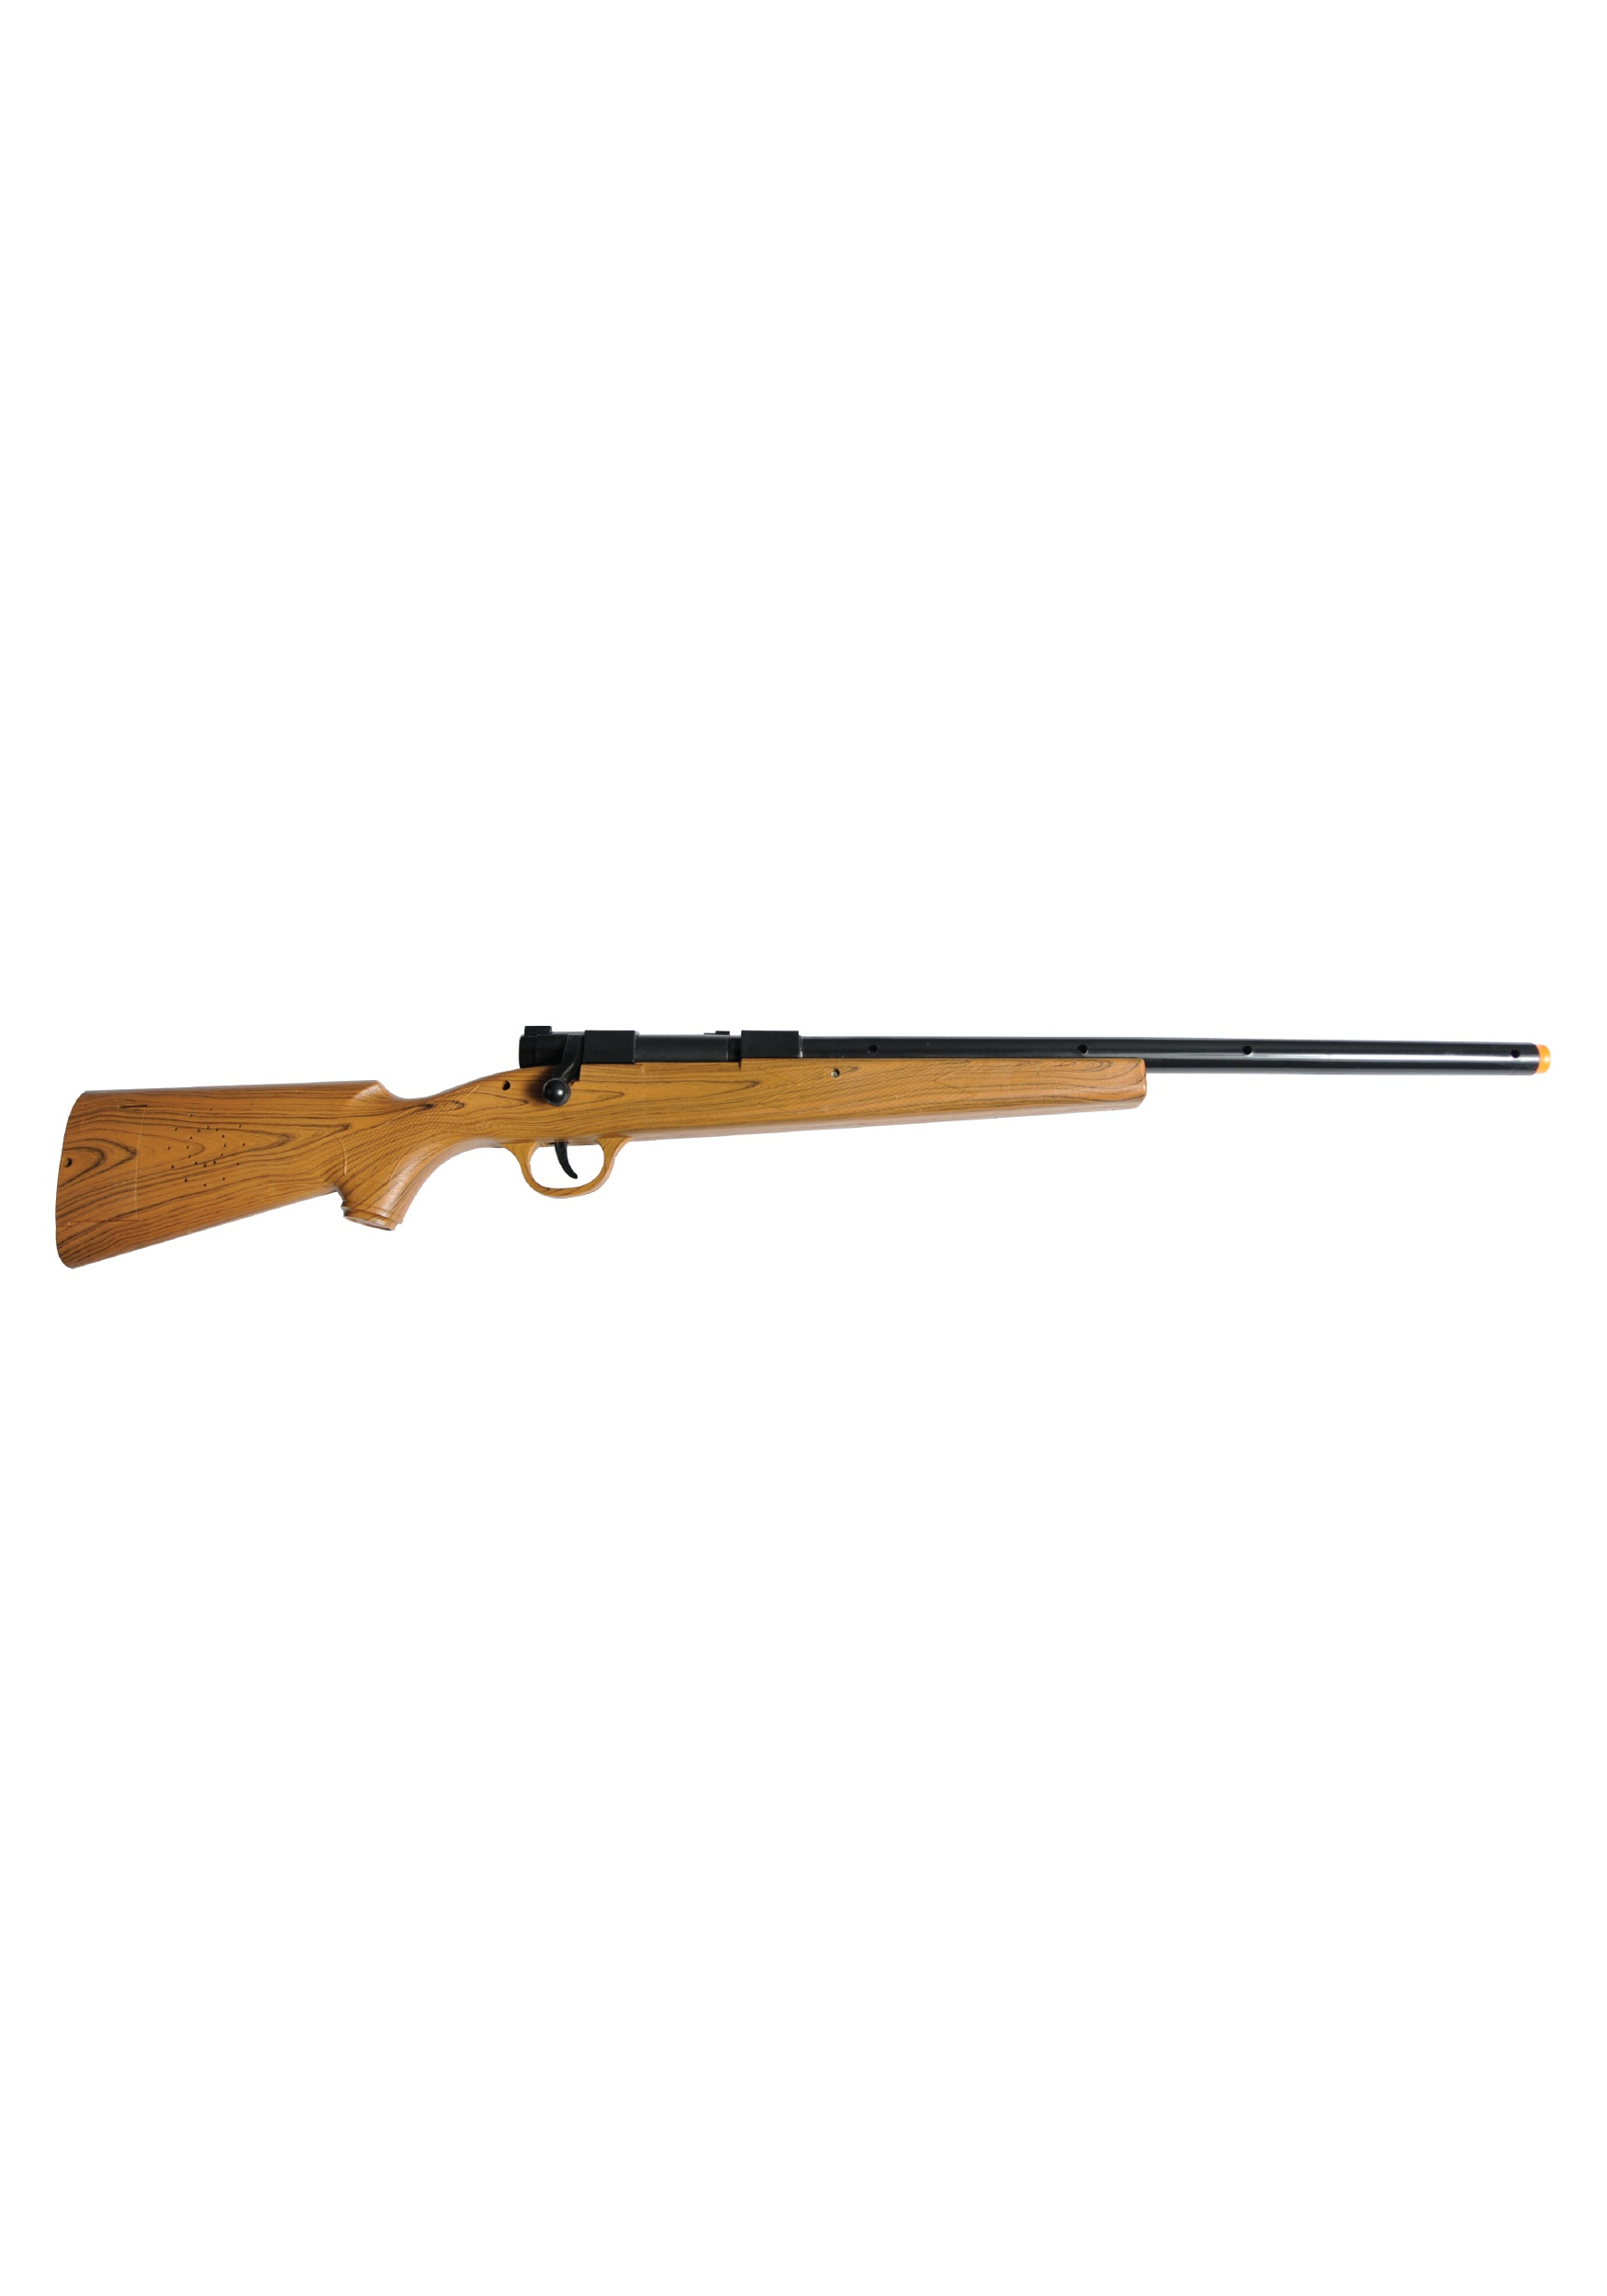 Toy Bolt Action Rifle SND10830B